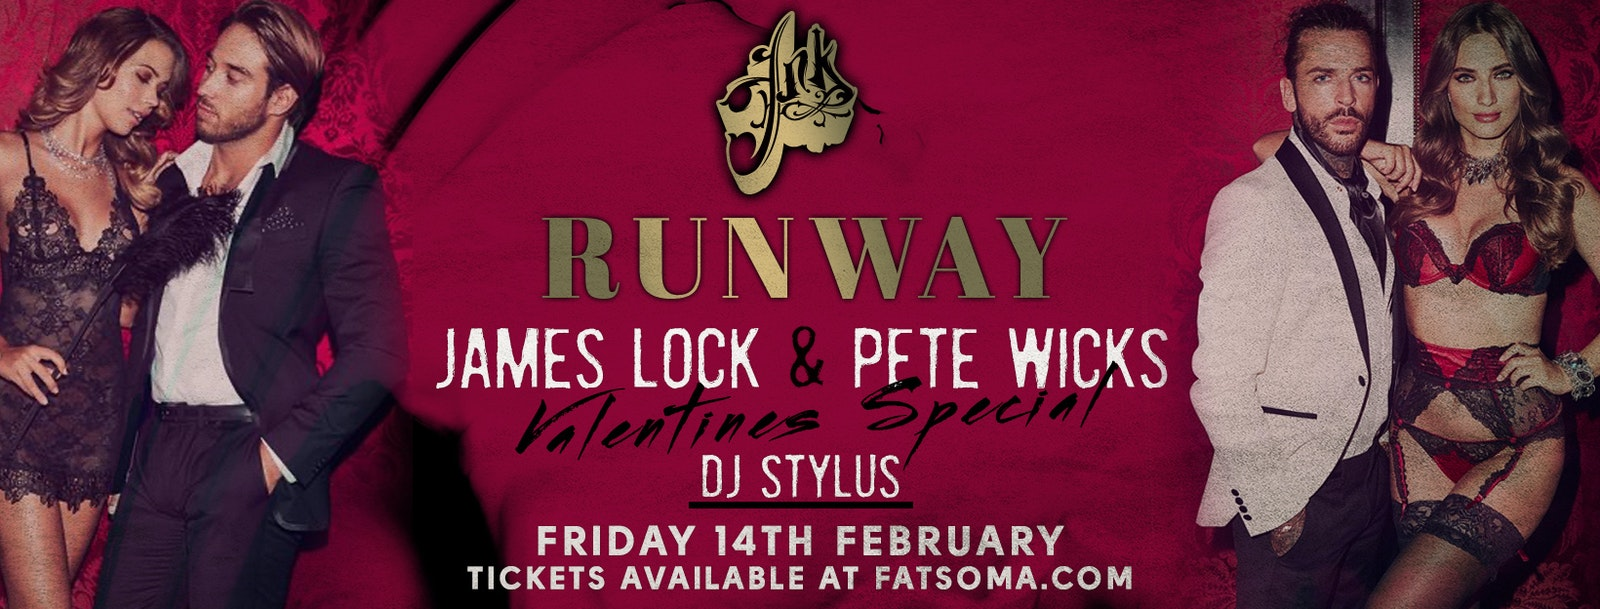 Runway Fridays with Pete Wicks & James Lock : Valentines Special